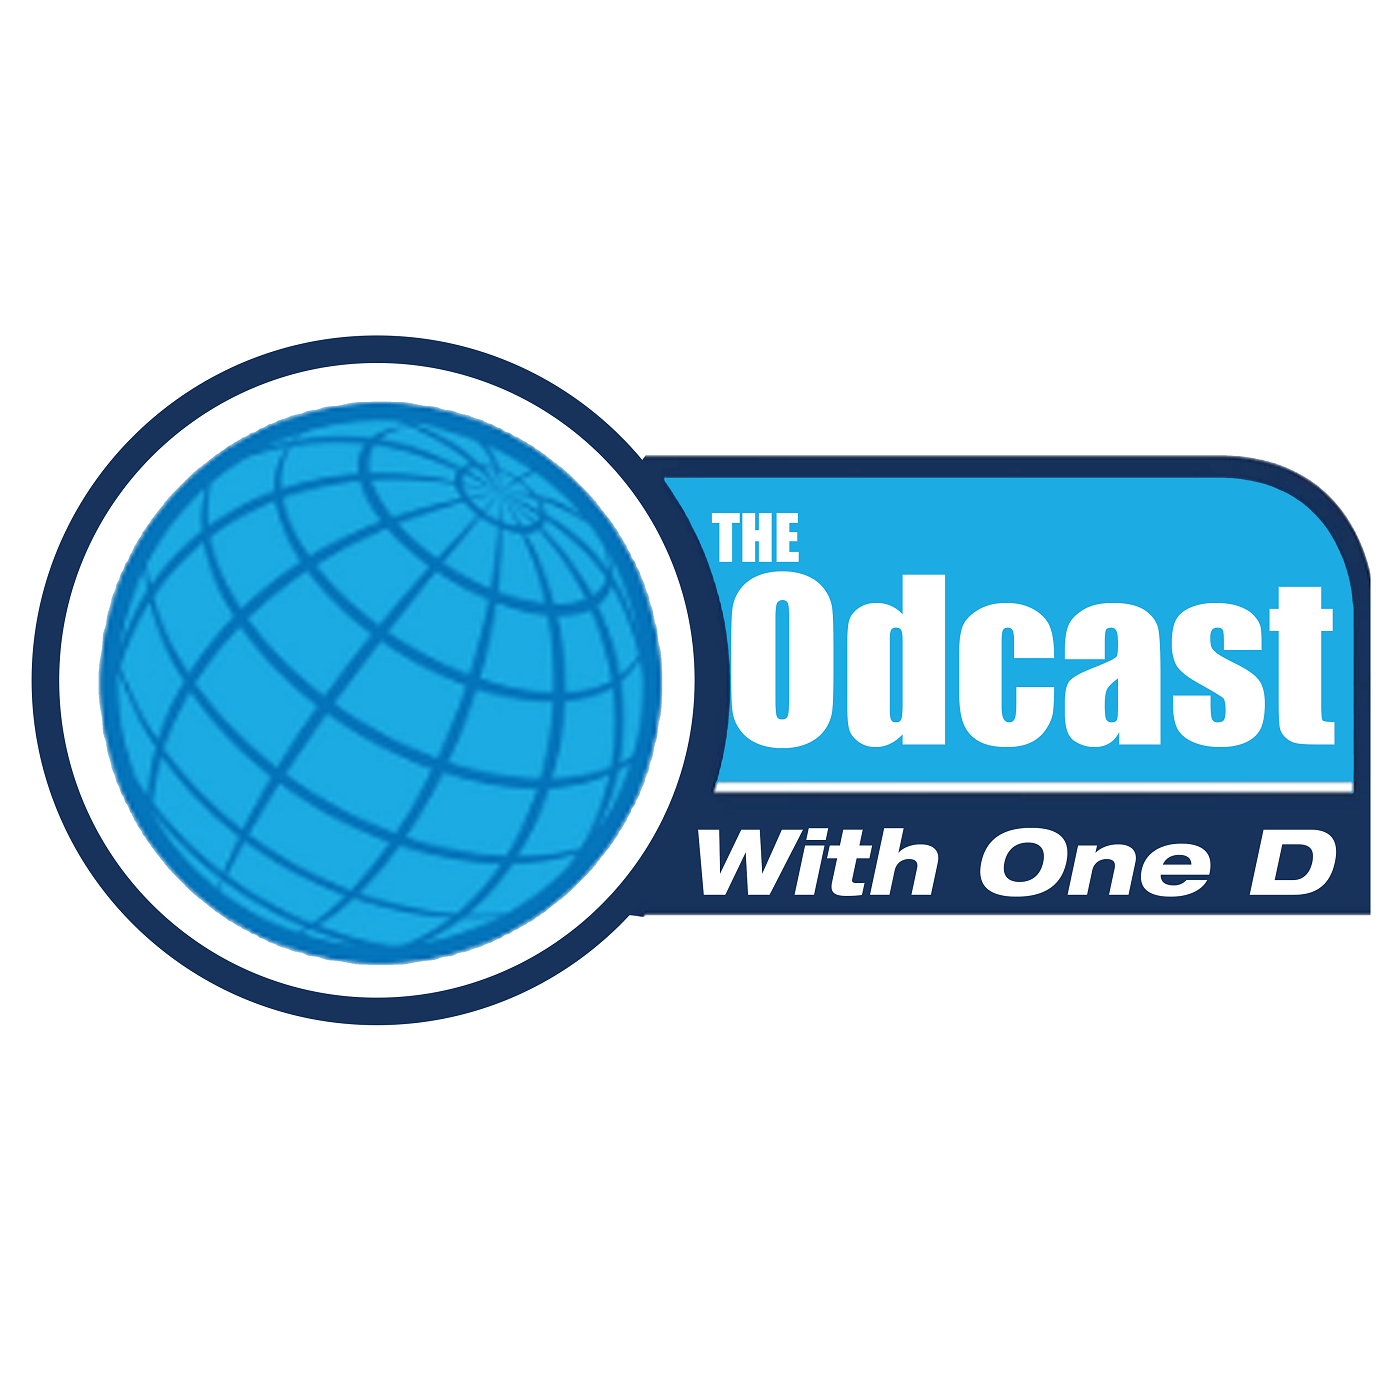 The Odcast With One D show art